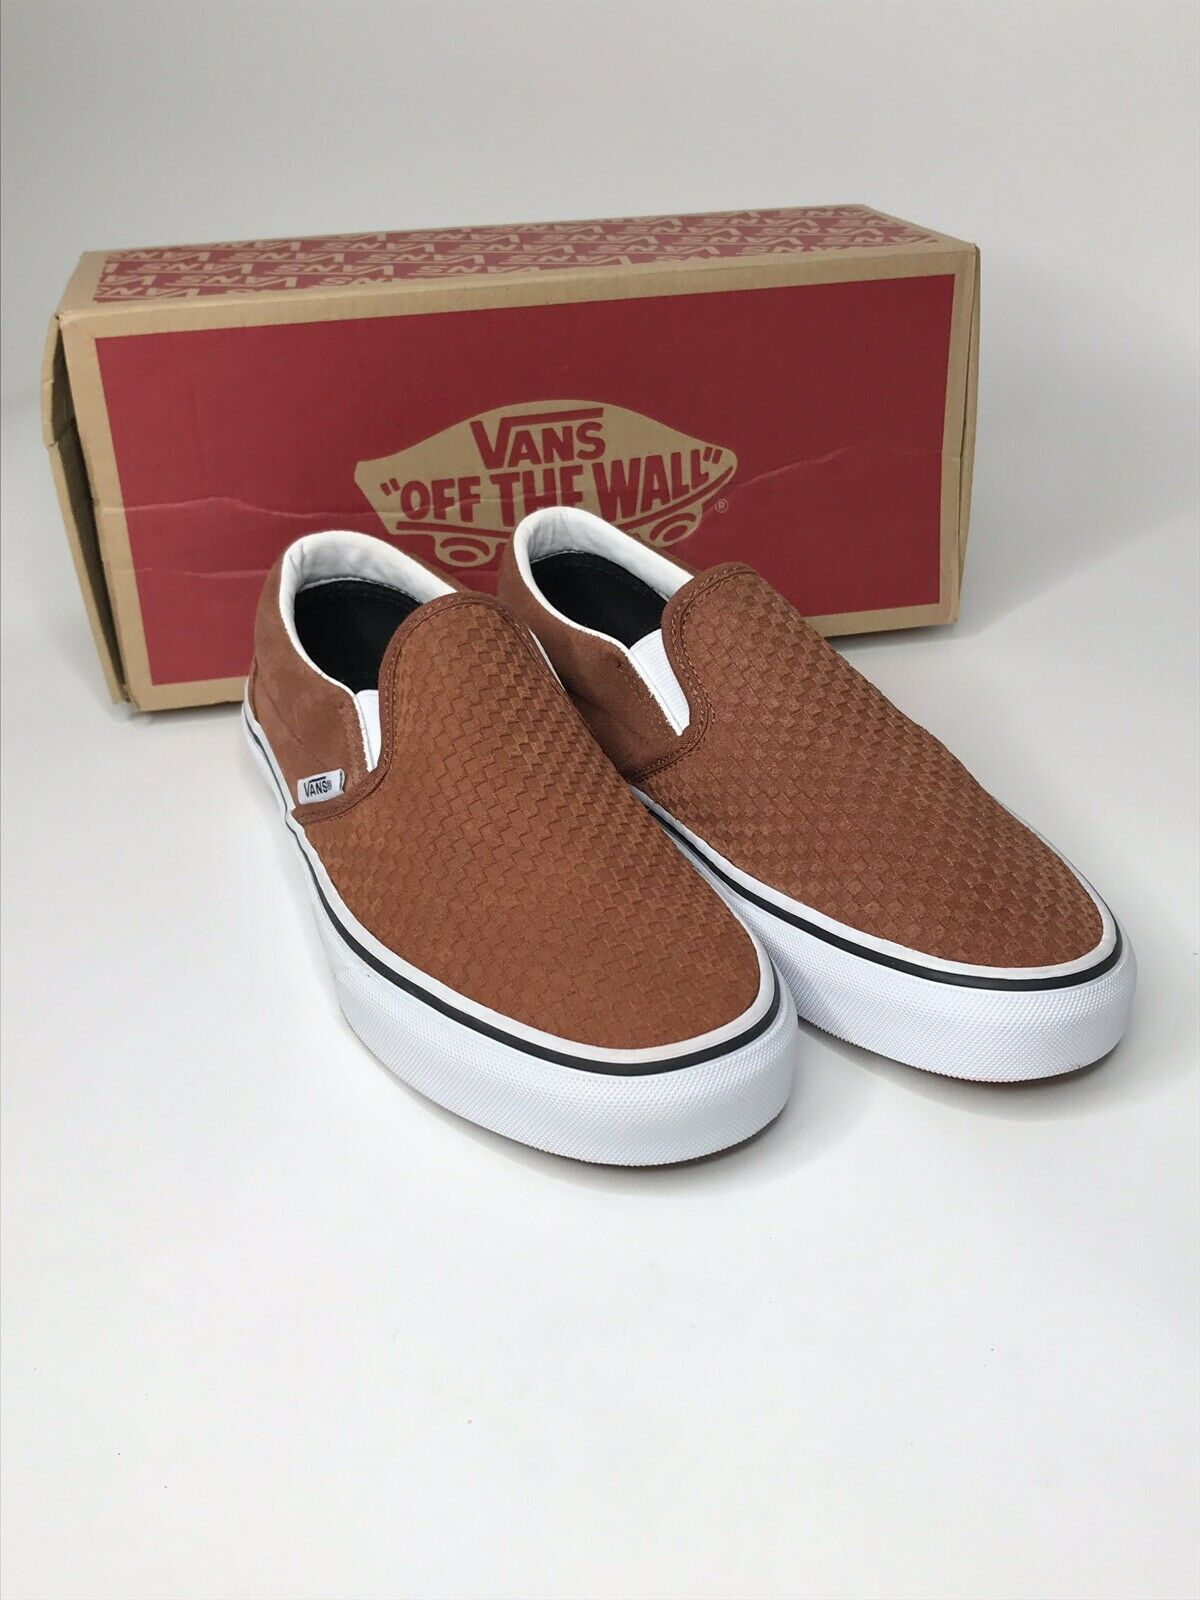 Vans Classic Slip-On Embossed Suede Men's shoes Sz 7  Women's 8.5 NWB Ships Free